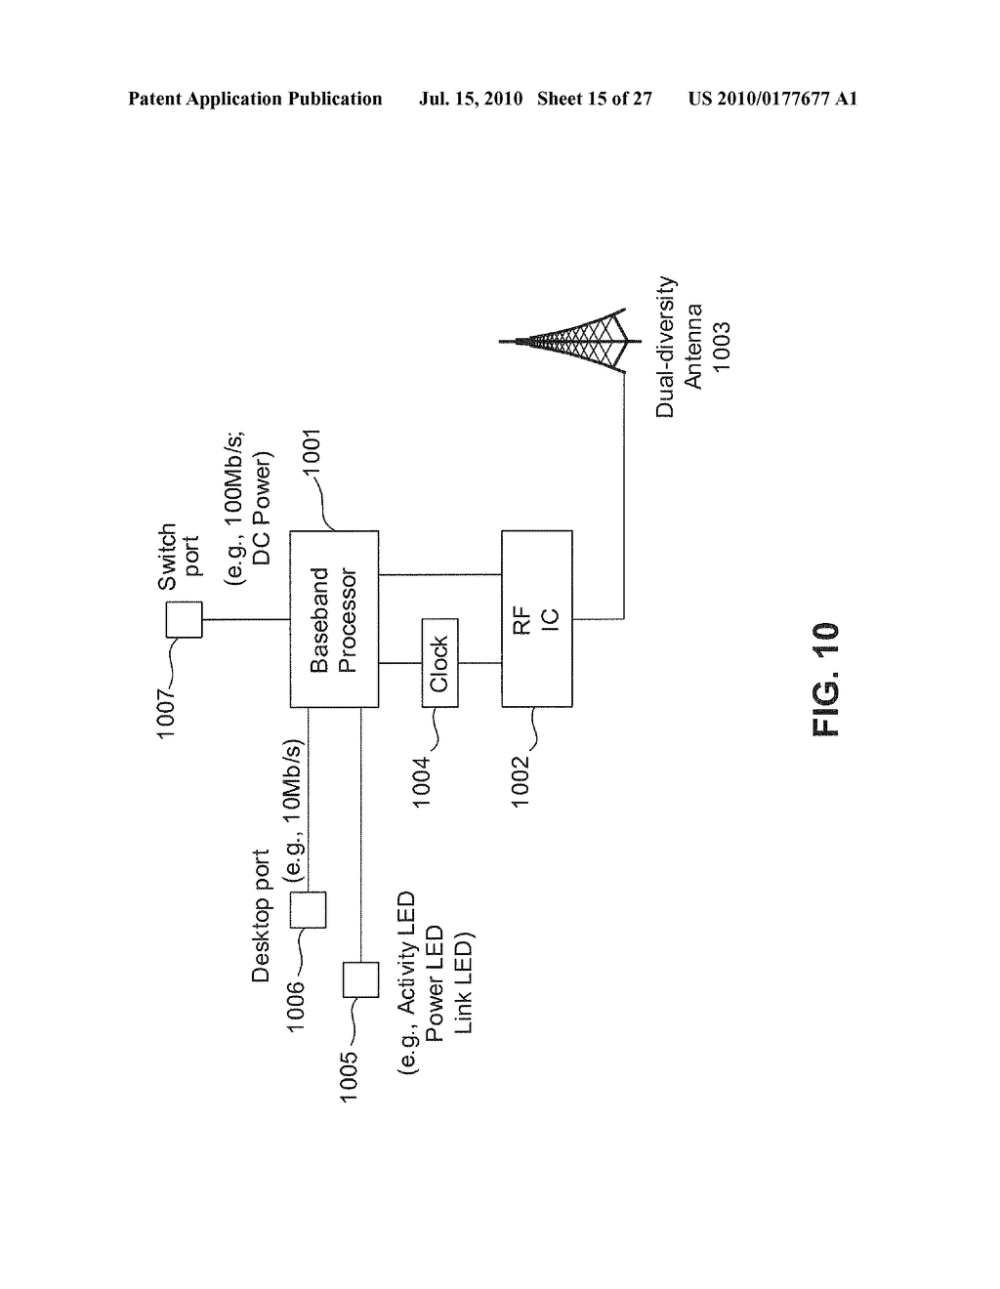 medium resolution of distributed mac architecture for wireless repeater diagram schematic and image 16